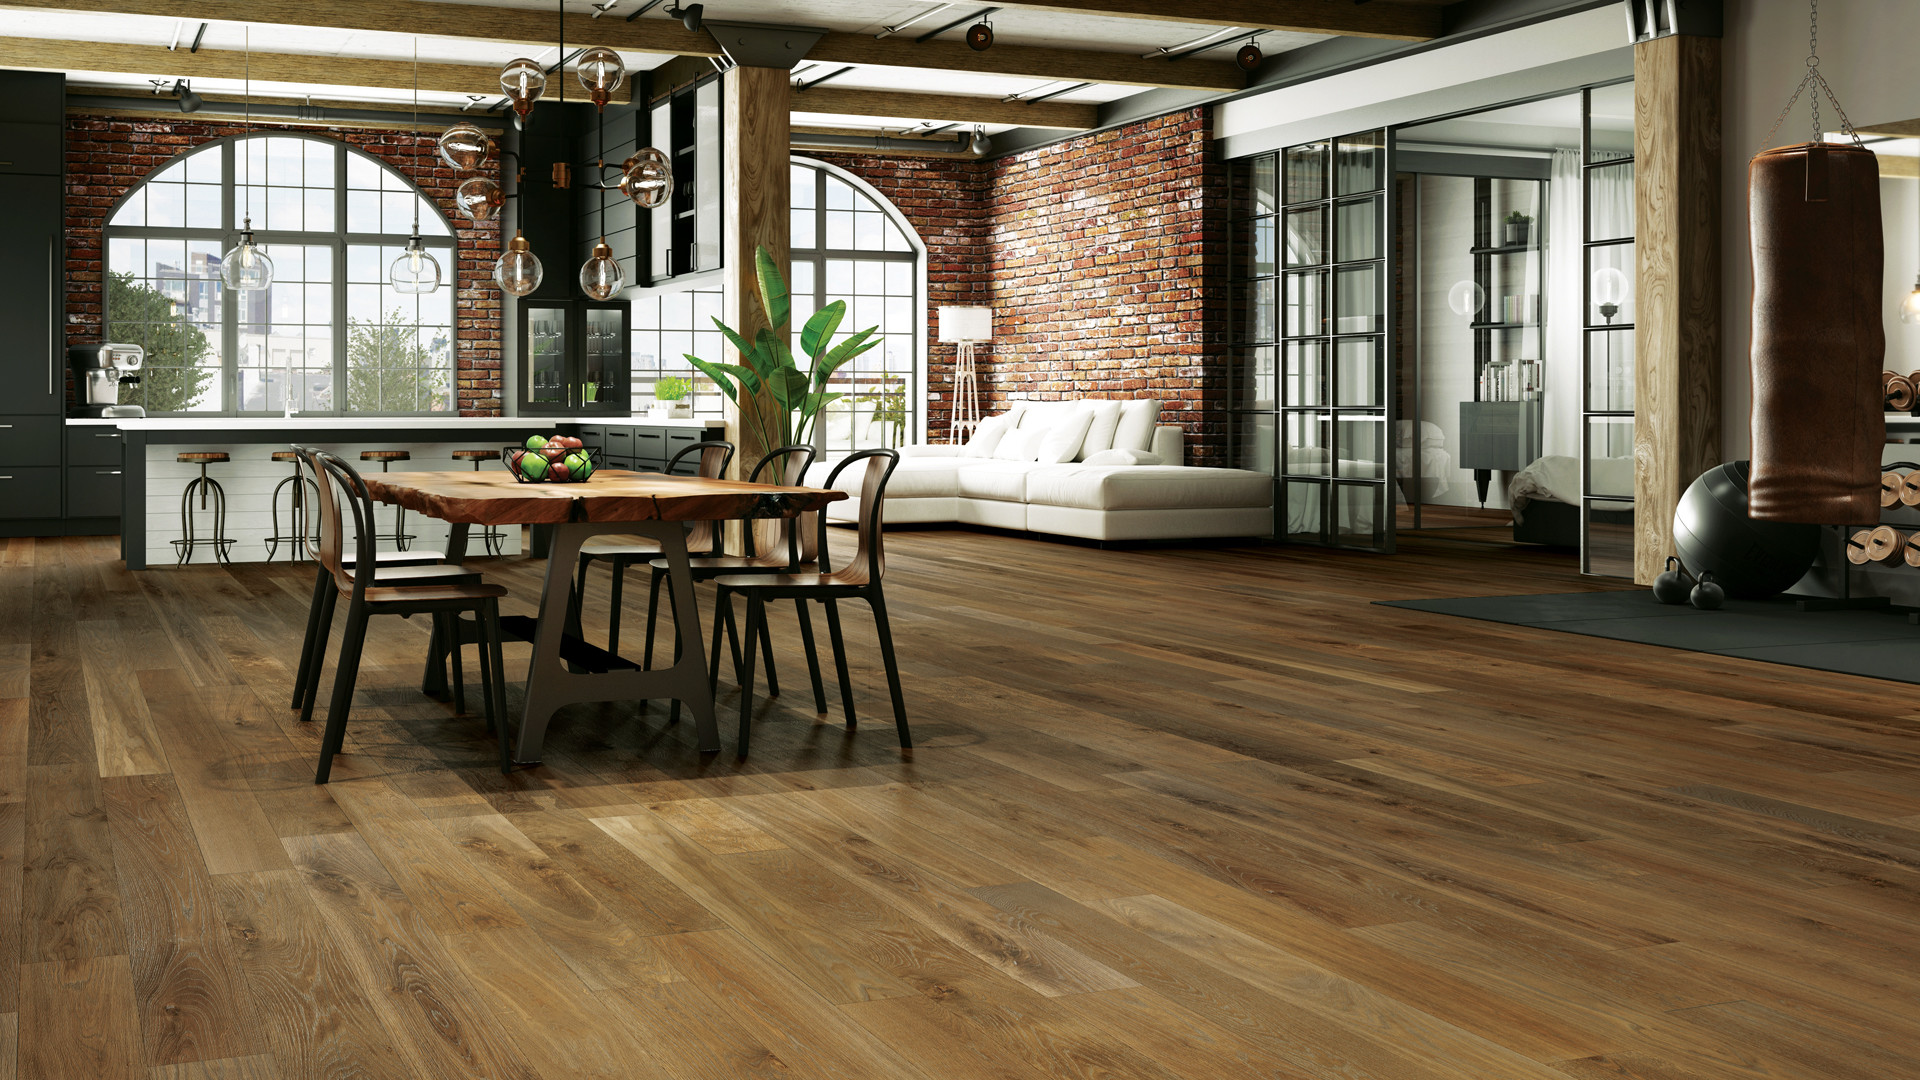 lauzon hardwood flooring prices of 4 latest hardwood flooring trends of 2018 lauzon flooring throughout combined with a wire brushed texture and an ultra matte sheen these new 7a½ wide white oak hardwood floors will definitely add character to your home